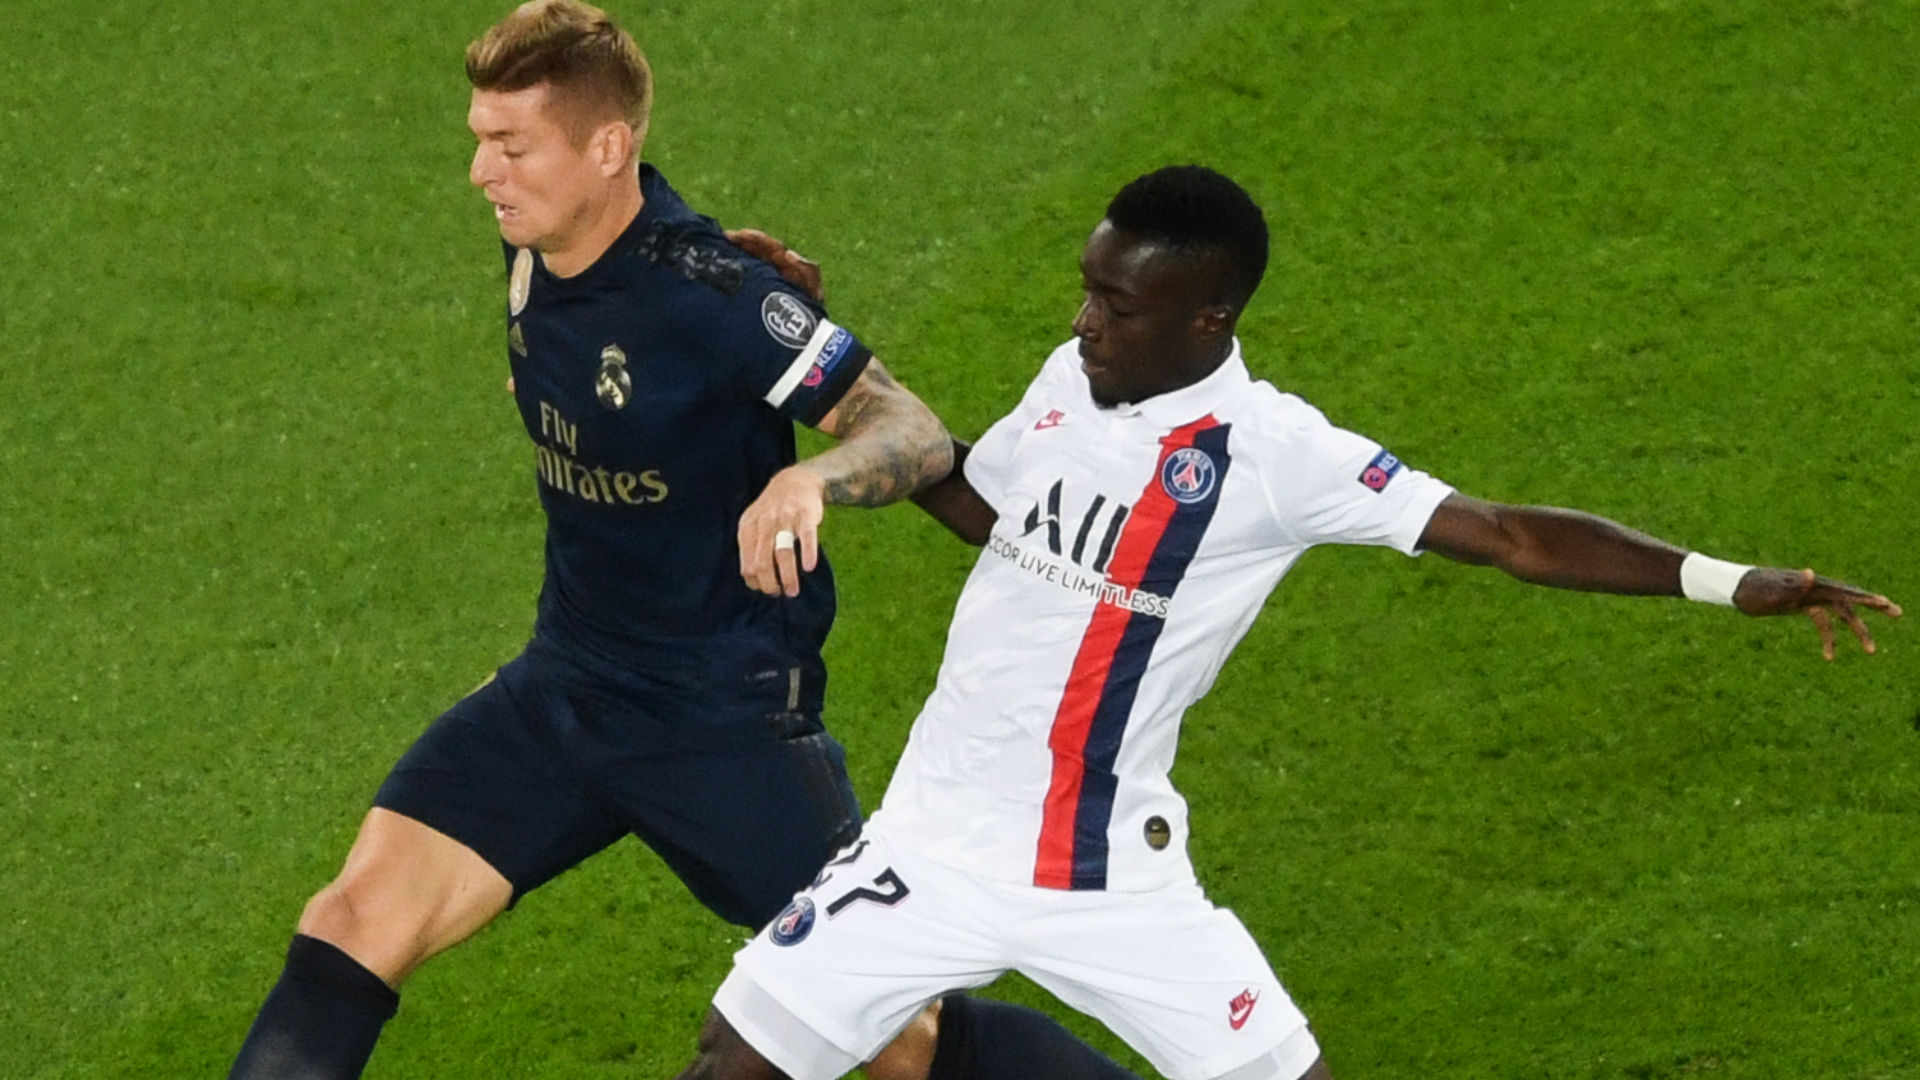 PSG defender Kimpembe hails 'monster' Gueye after Real Madrid display